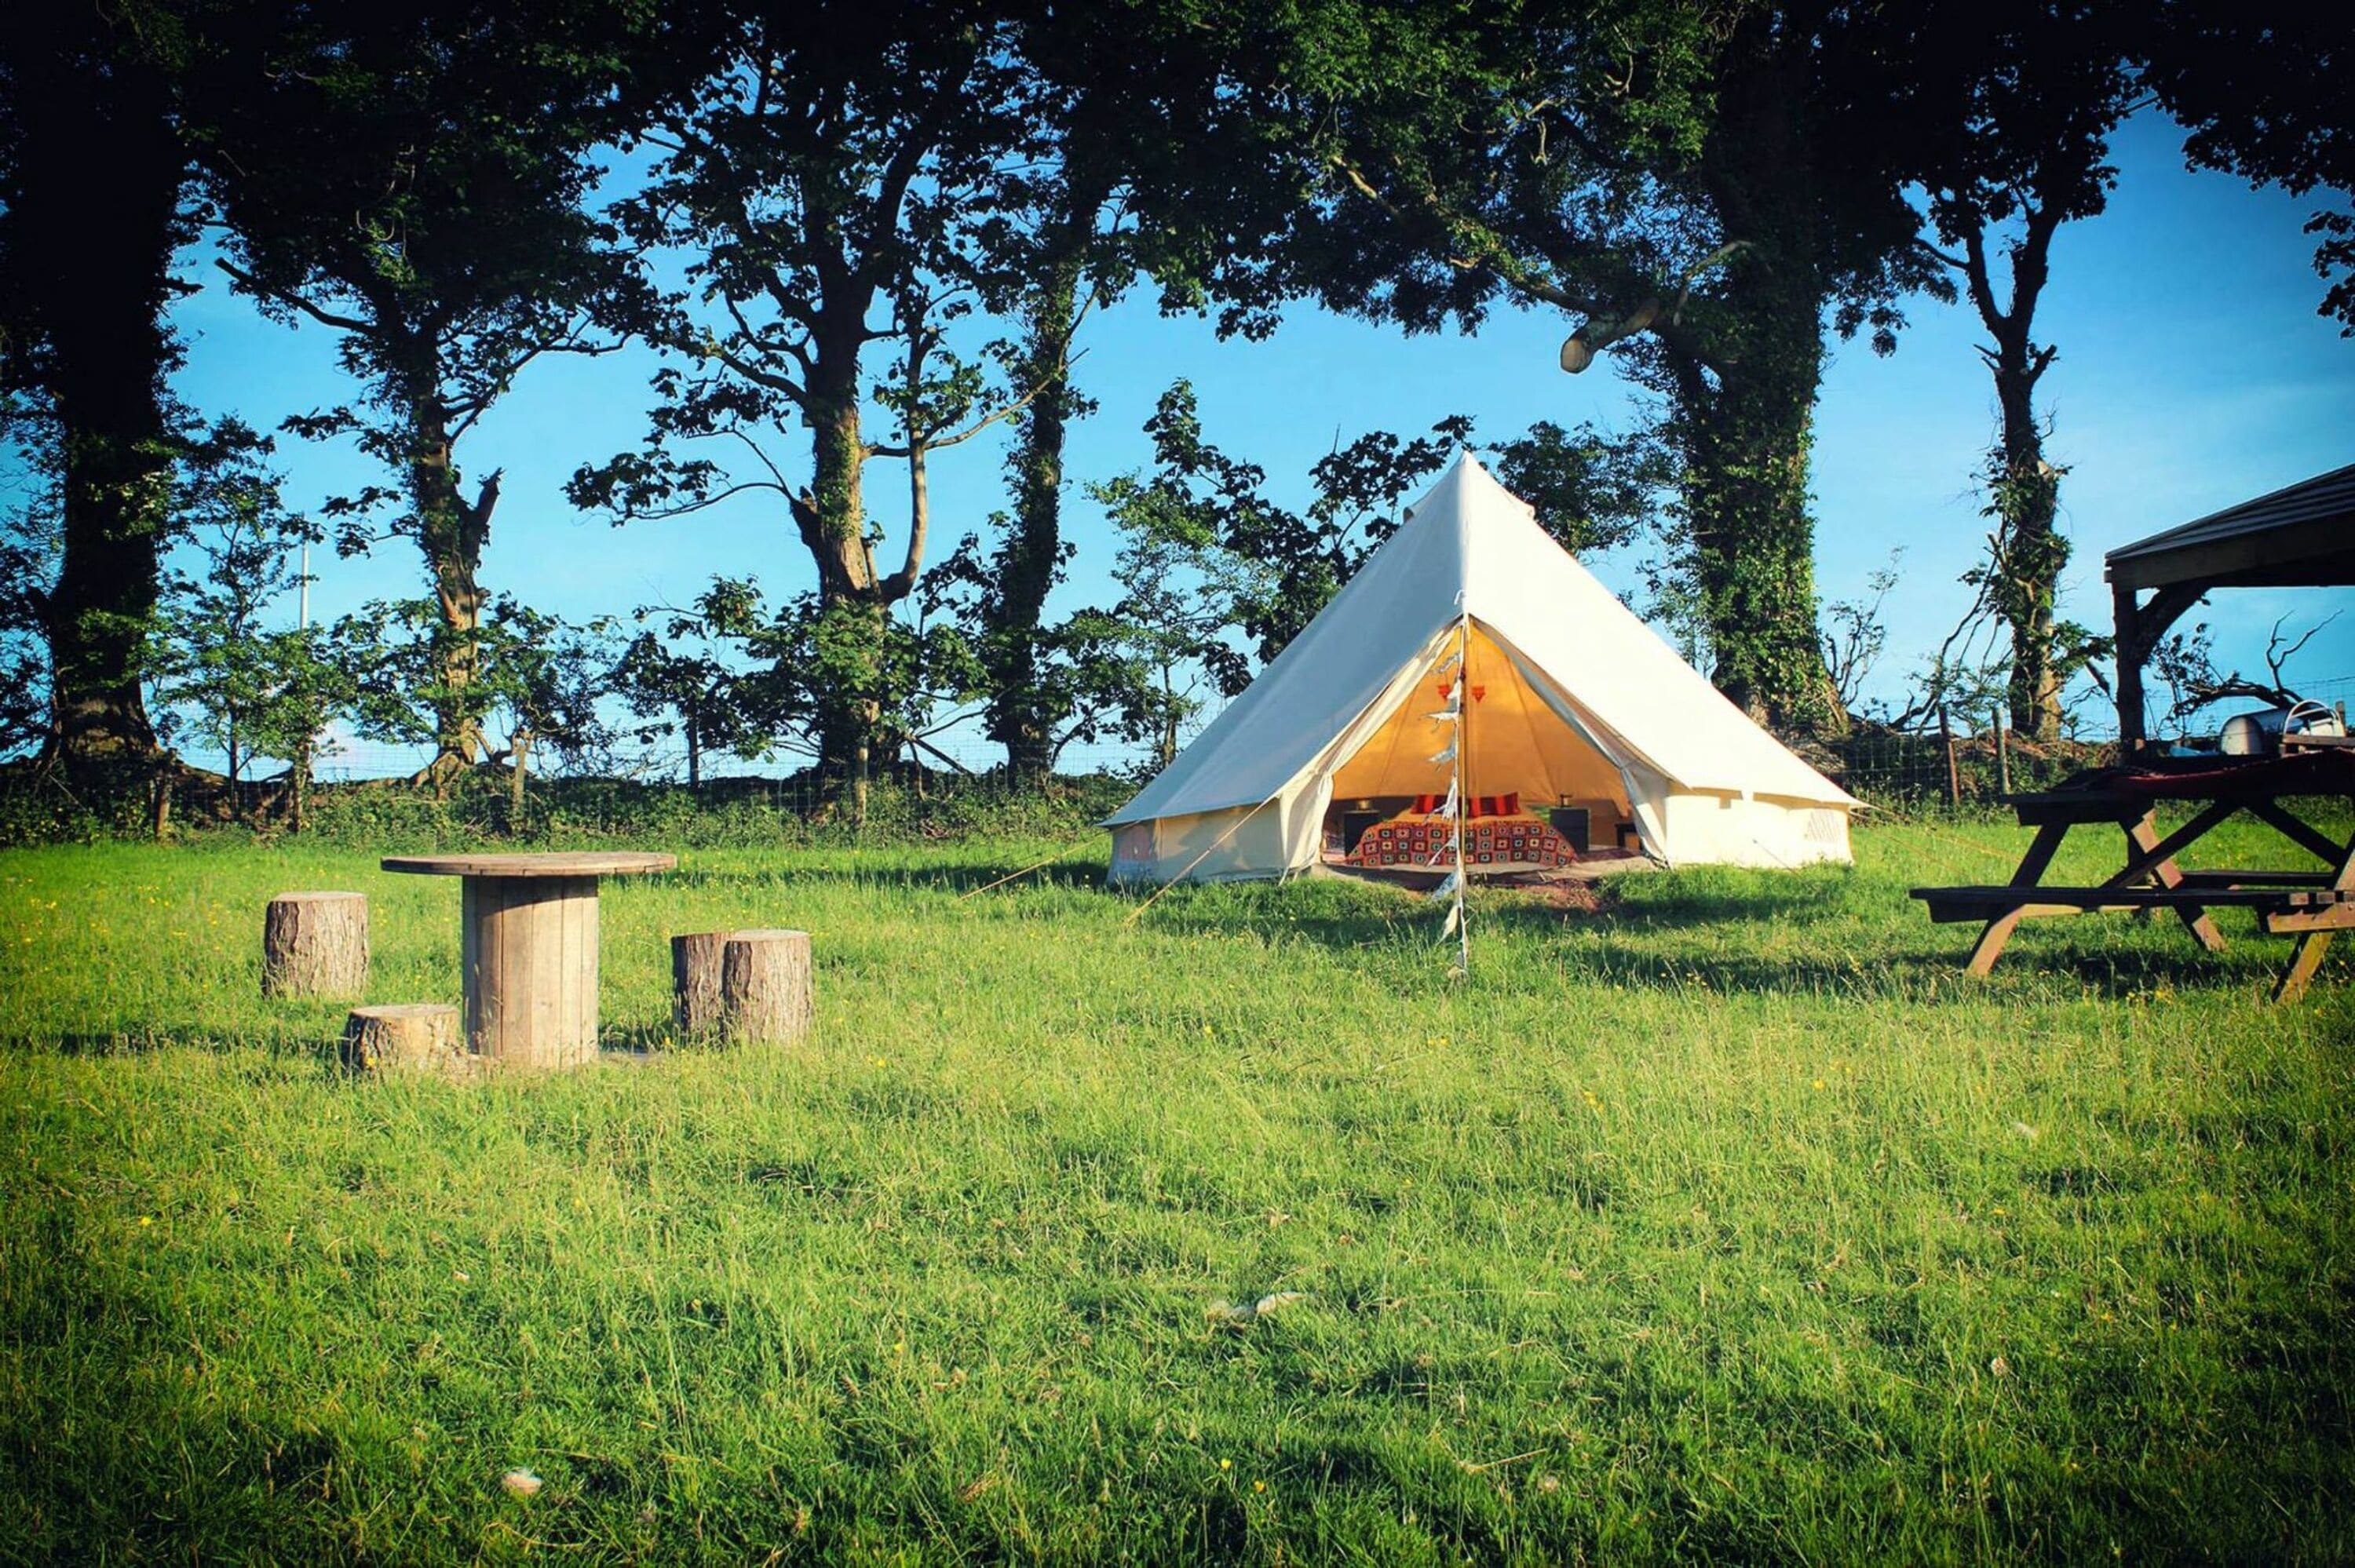 Hippie Hippie Shake Bell Tent Hang Out Zone Richmond 2021 Updated Prices Expedia Co Uk